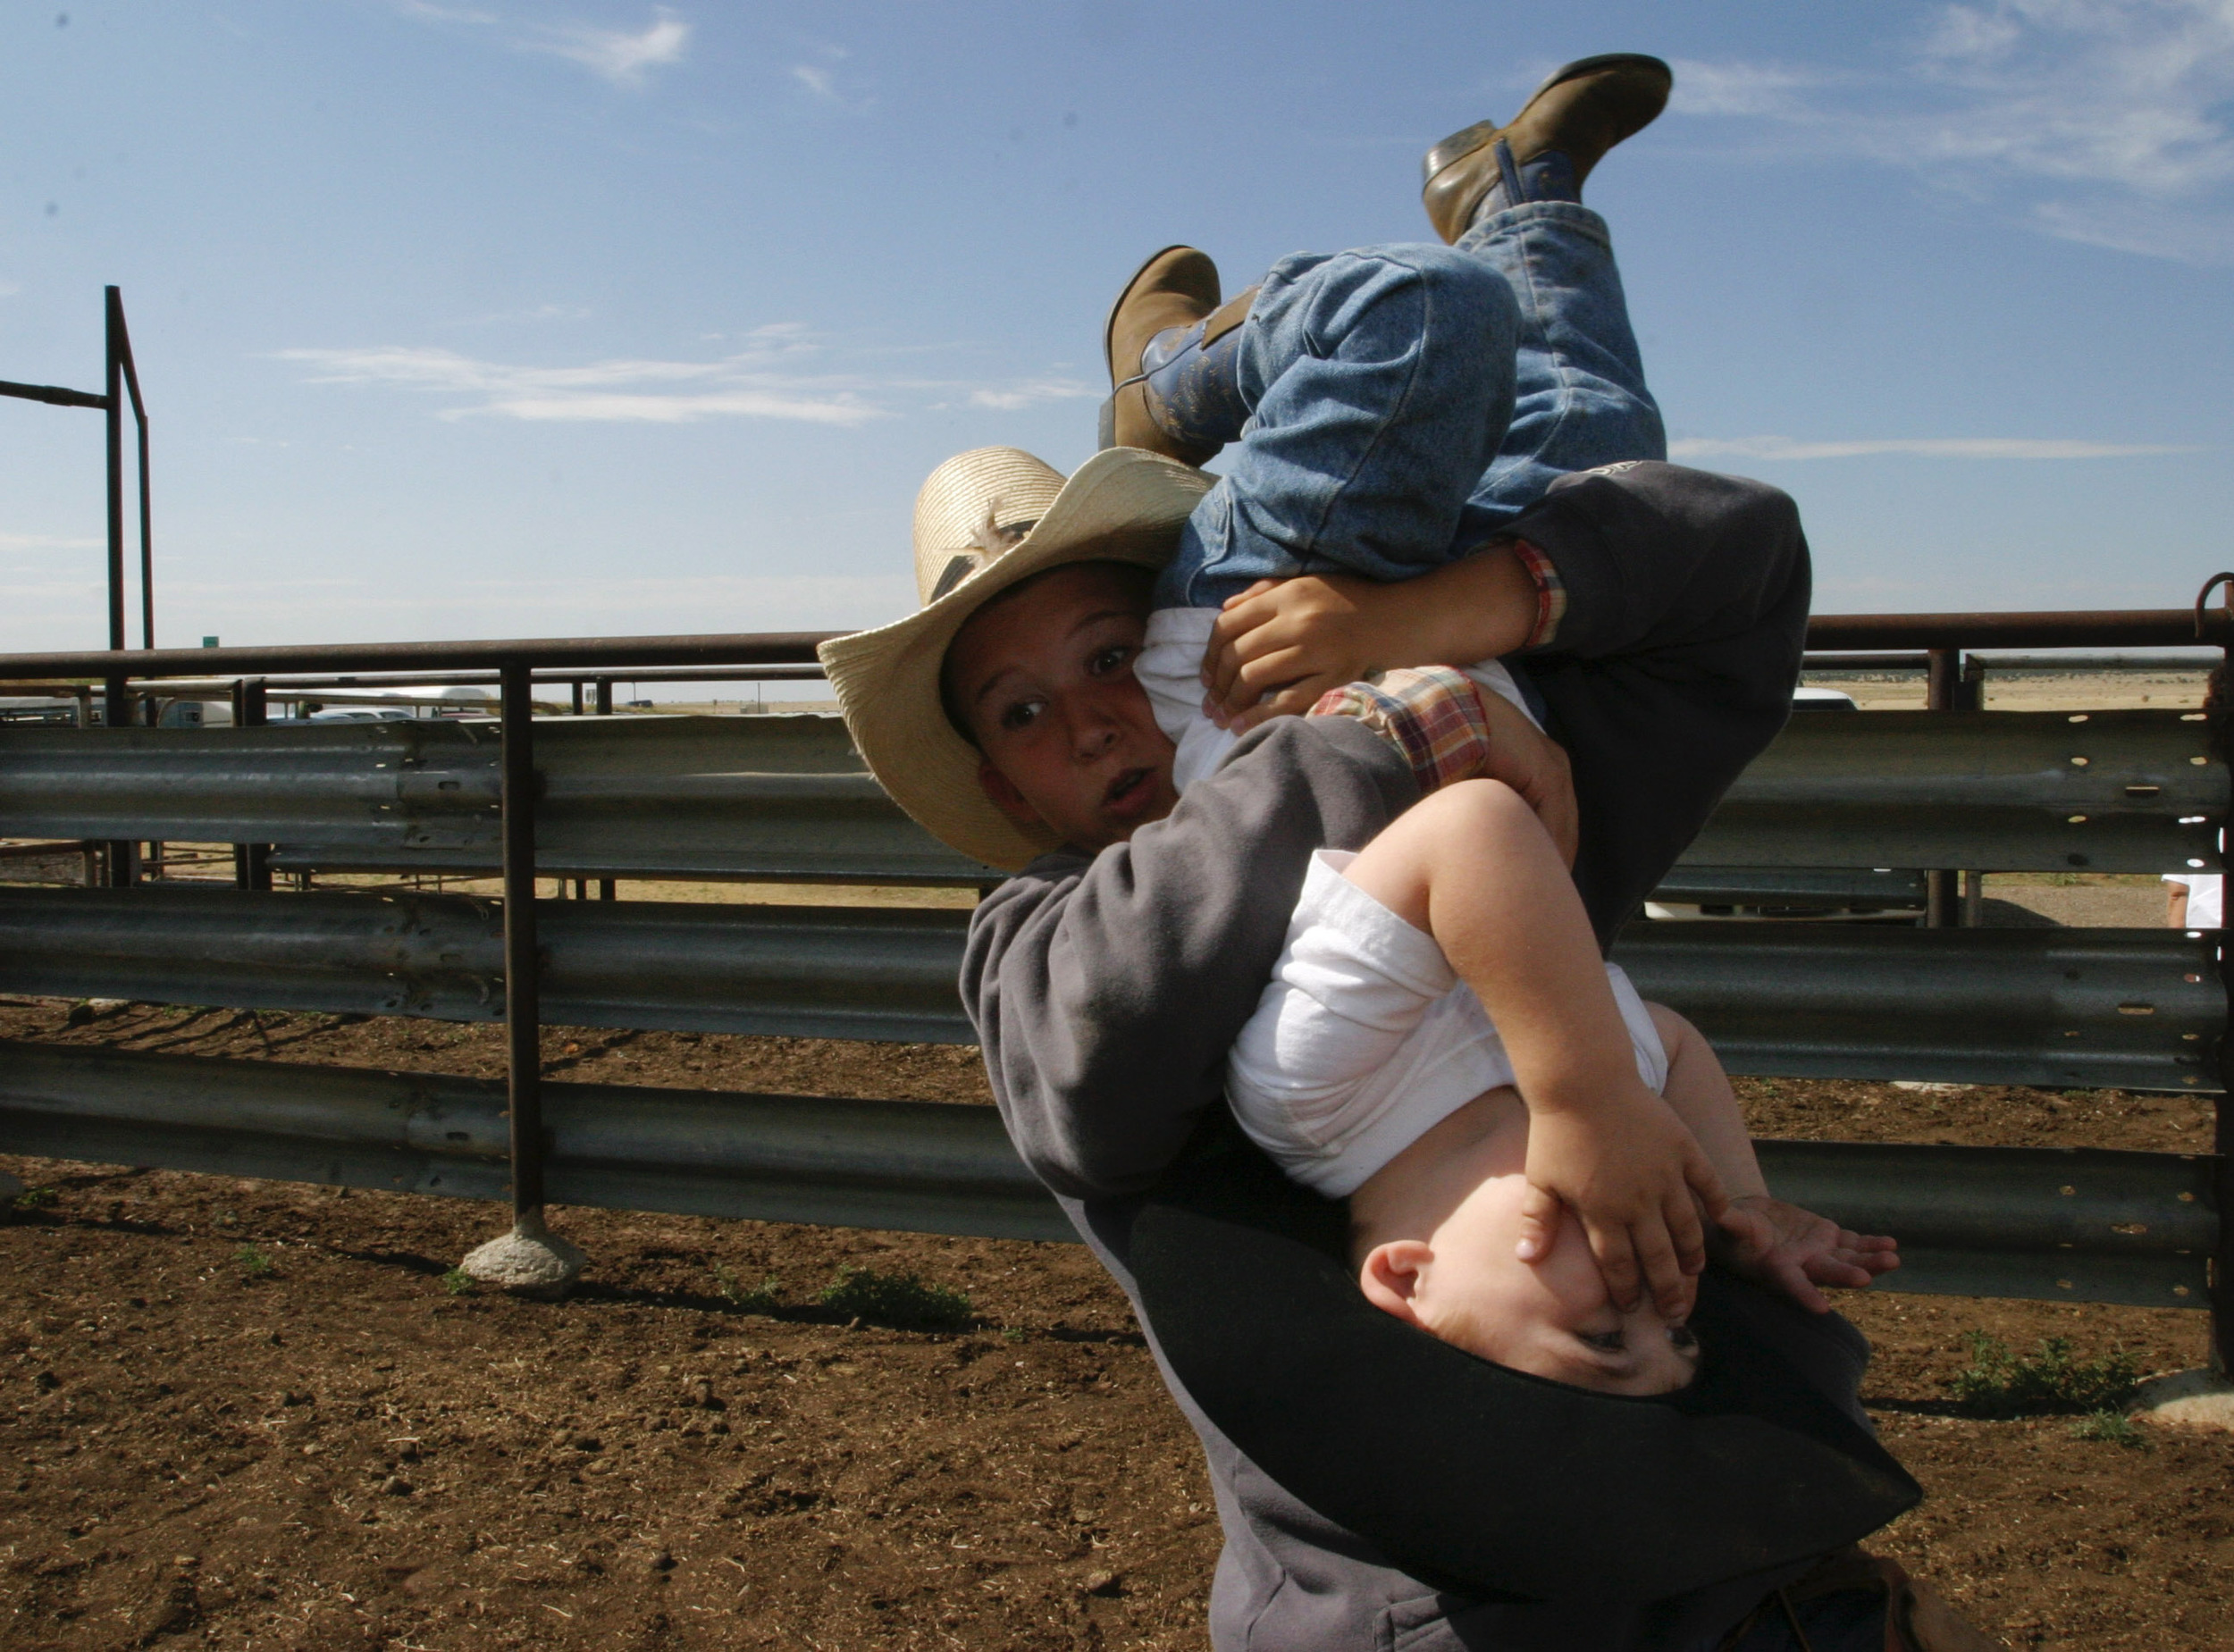 Truitt Frost, makes a face as he struggles to hold onto Andrew Martin Cribbs, 3, on the family ranch in New Mexico during a roundup.